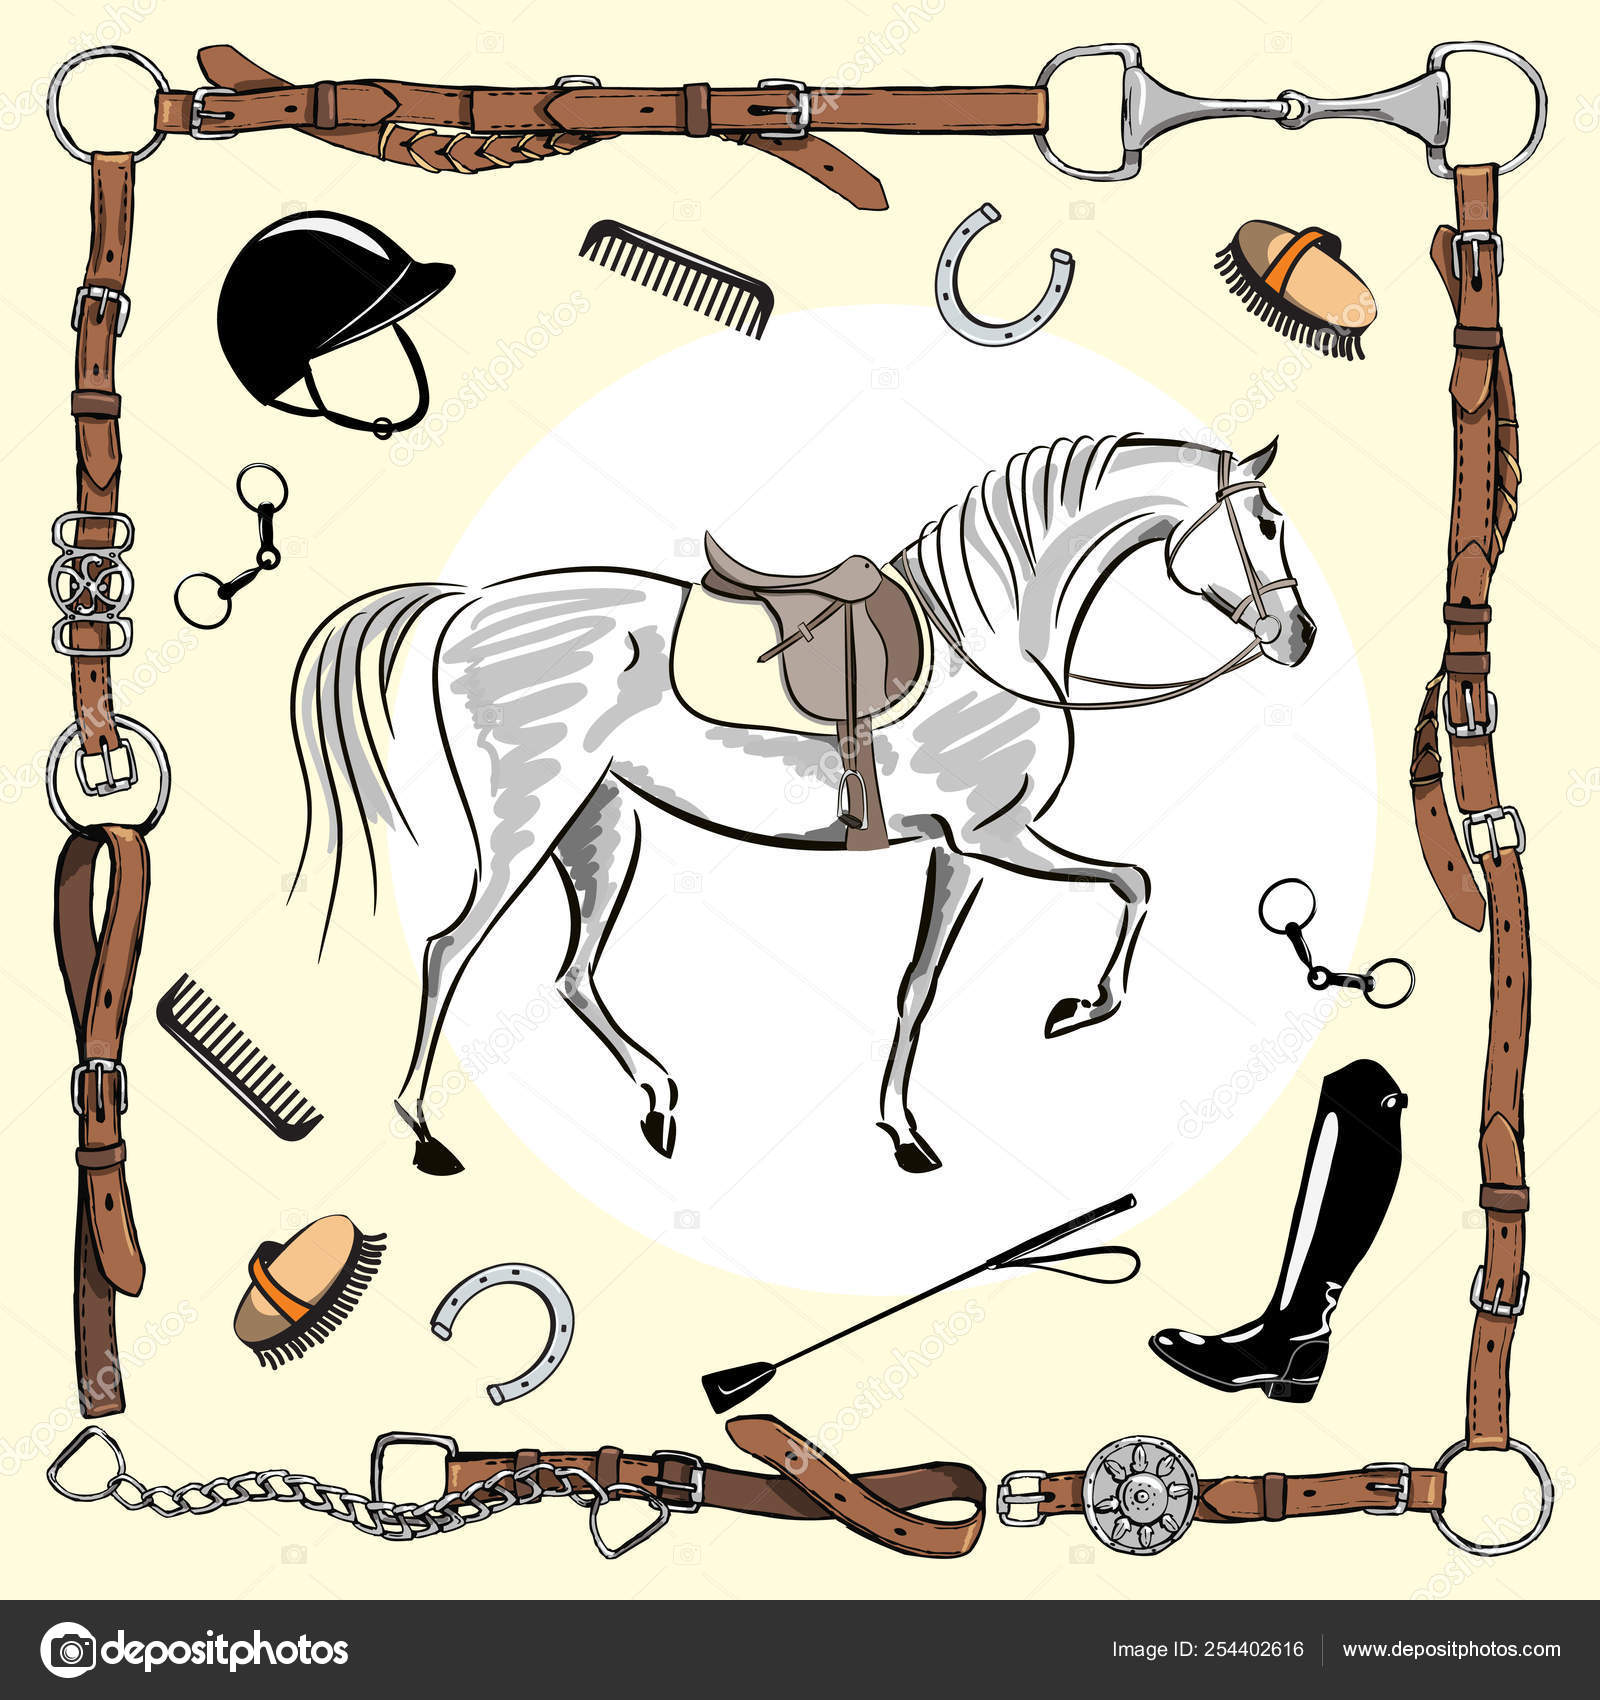 Horse Equestrian Riding Gear Tack Tool Leather Belt Bridle Frame Stock Vector C Larisa Zorina 254402616